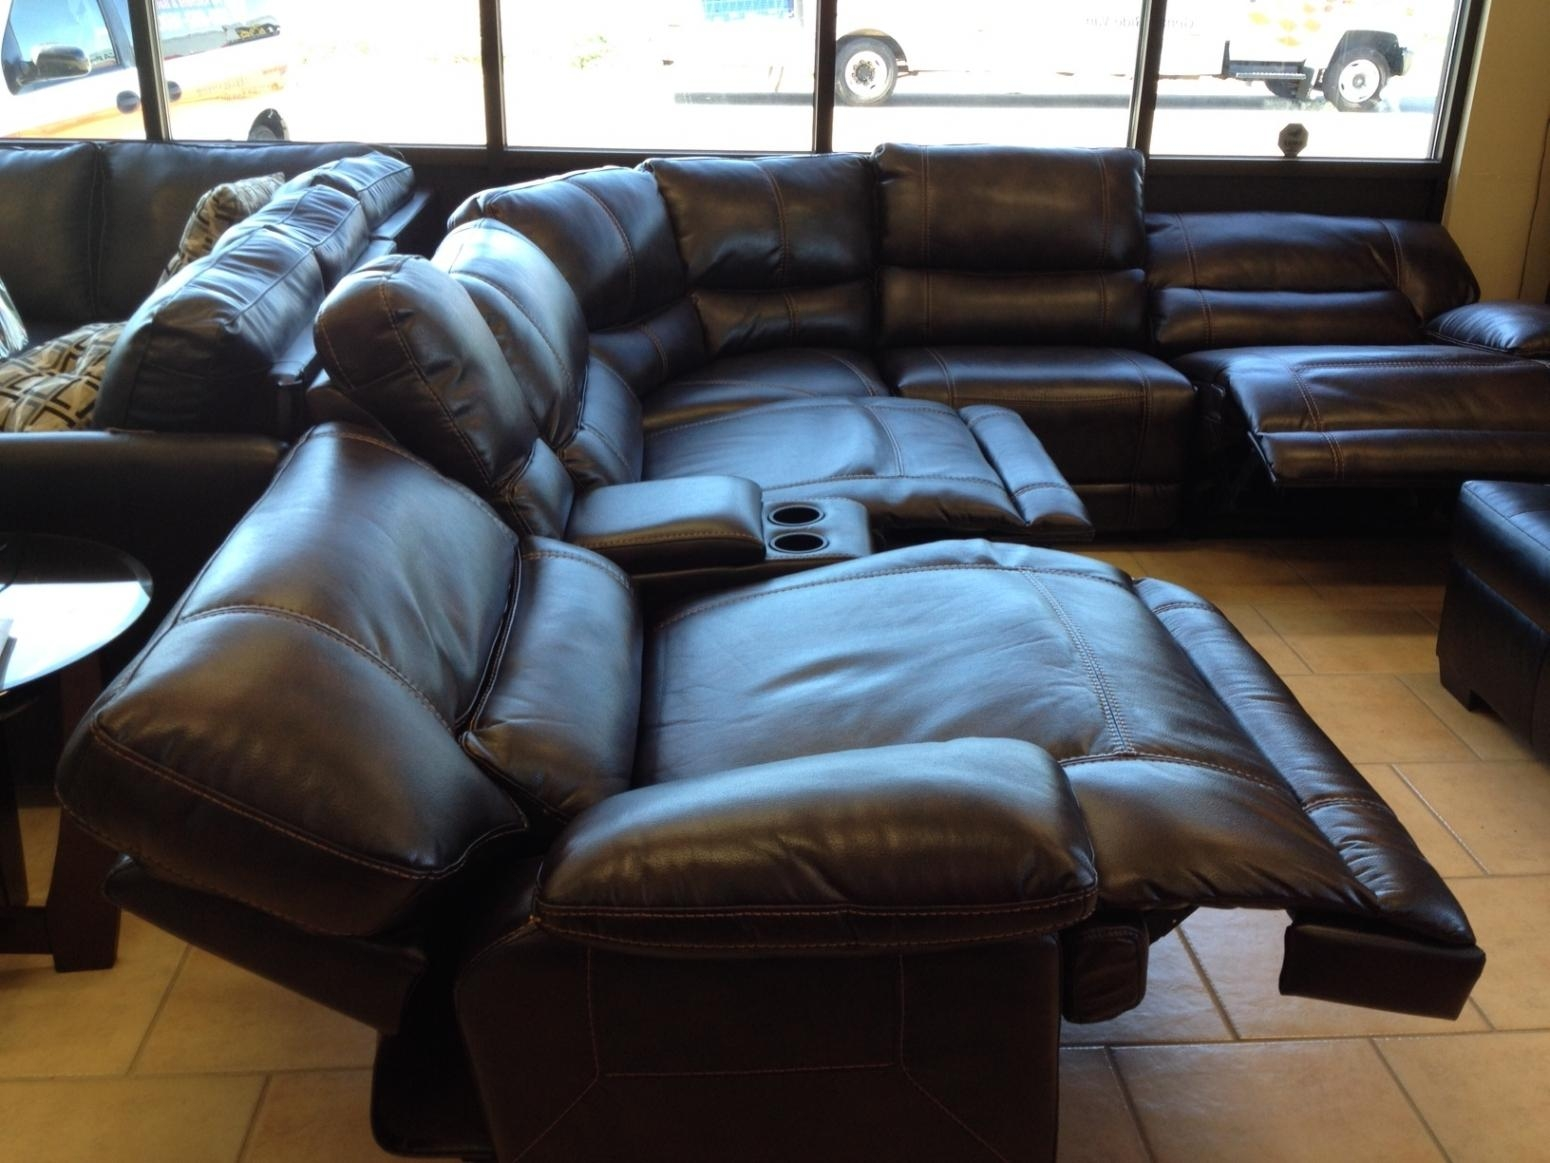 Sectional Sofas With Electric Recliners – Cleanupflorida Inside For Sectional Sofas With Electric Recliners (Image 20 of 22)